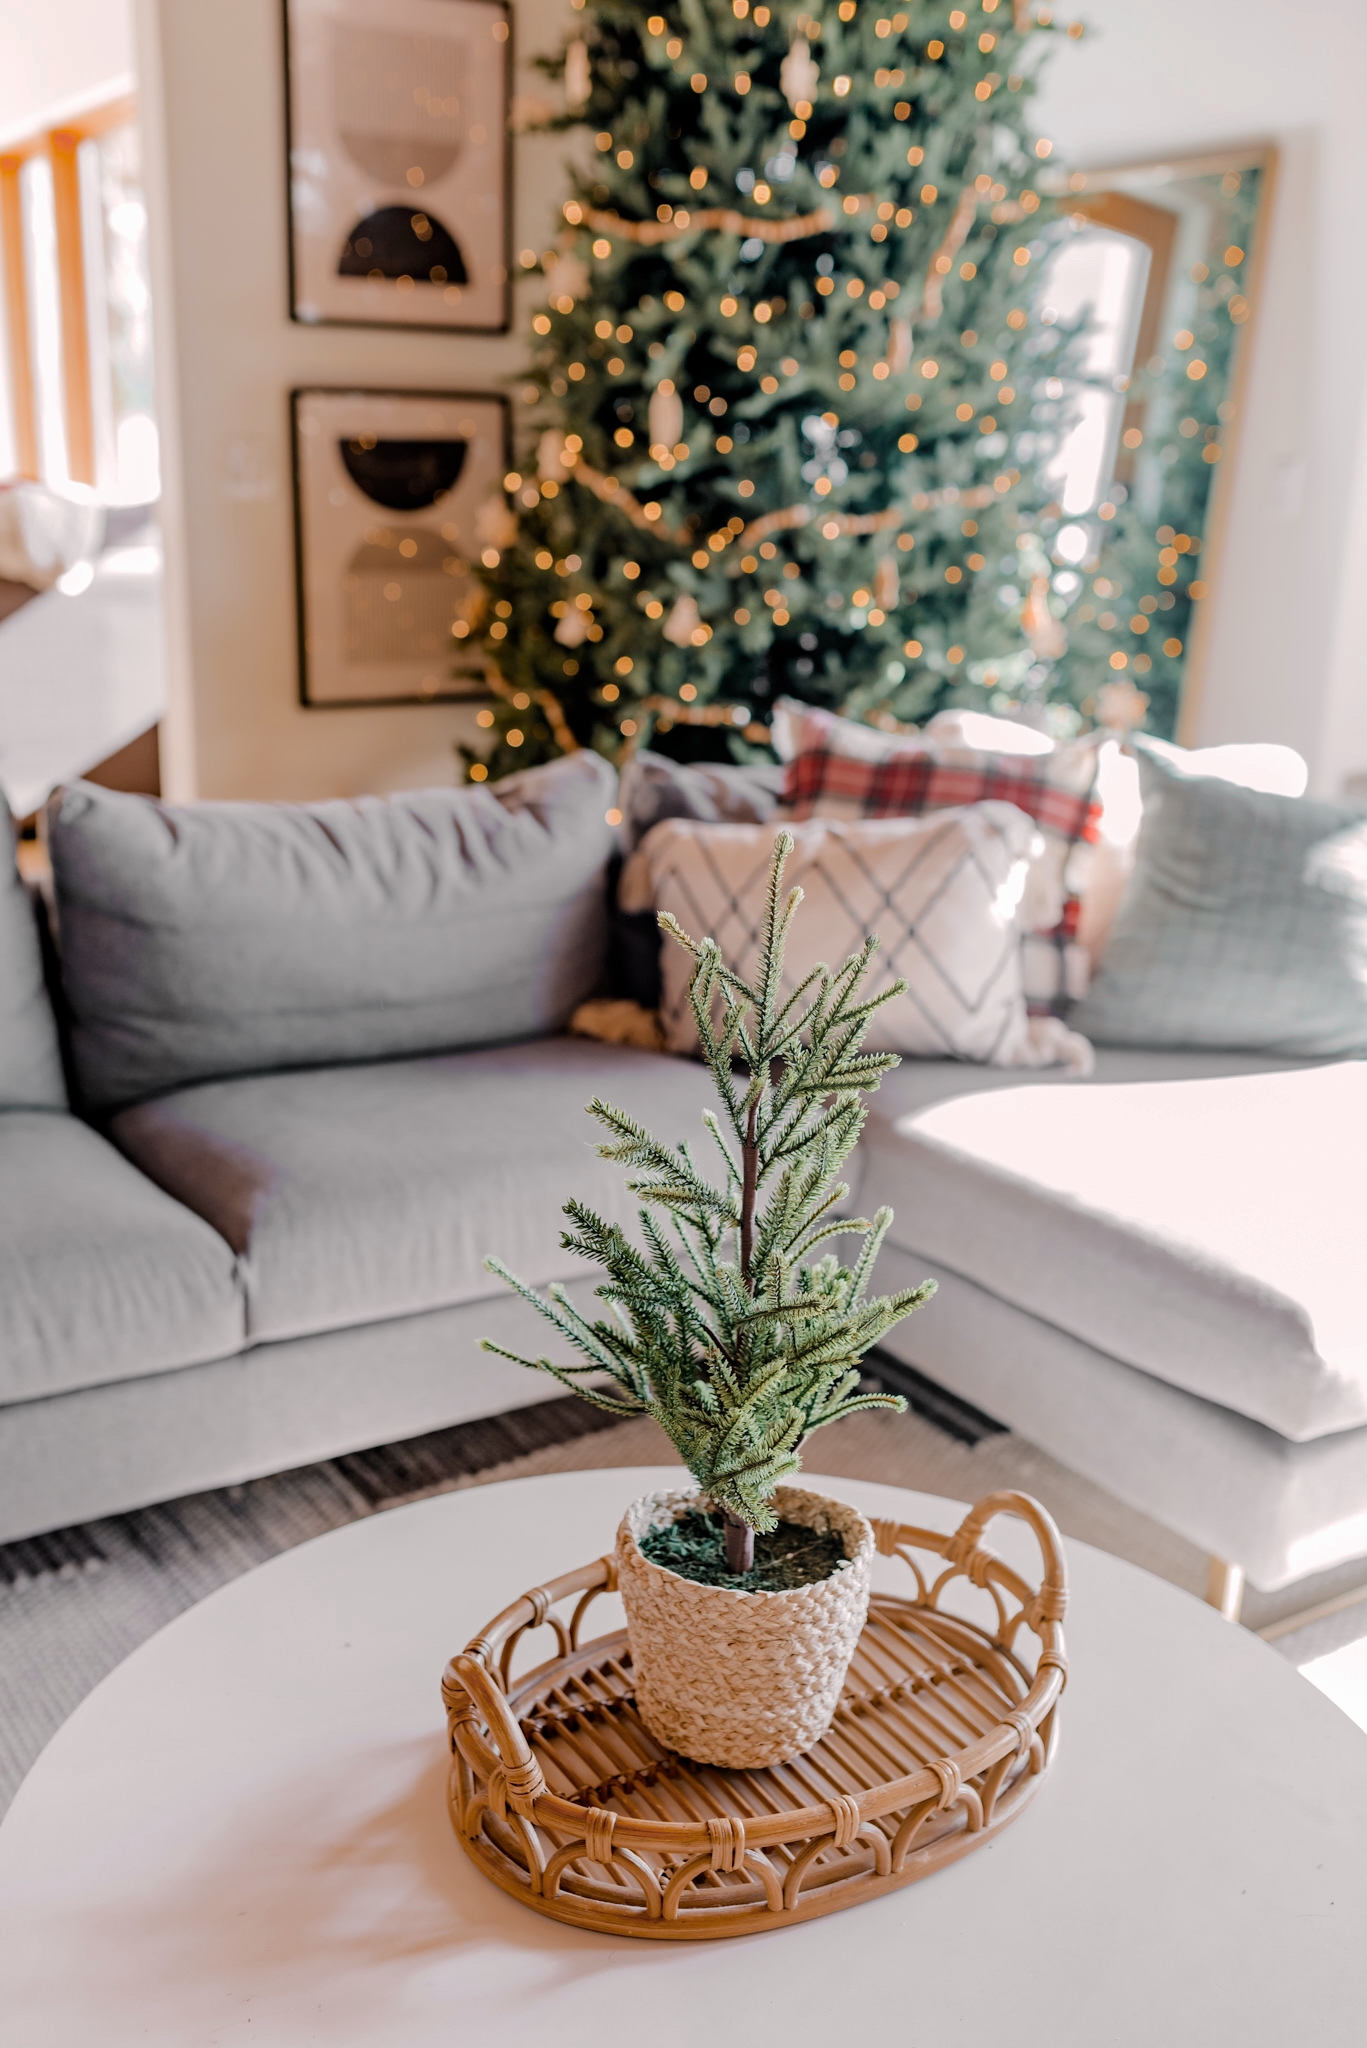 Holiday Gift Guide for the Home  Gifts for the Home by popular San Diego life and style blog, Navy Grace: image of a faux mini pine tree in a woven grass pot that's resting on a rattan serving tray.